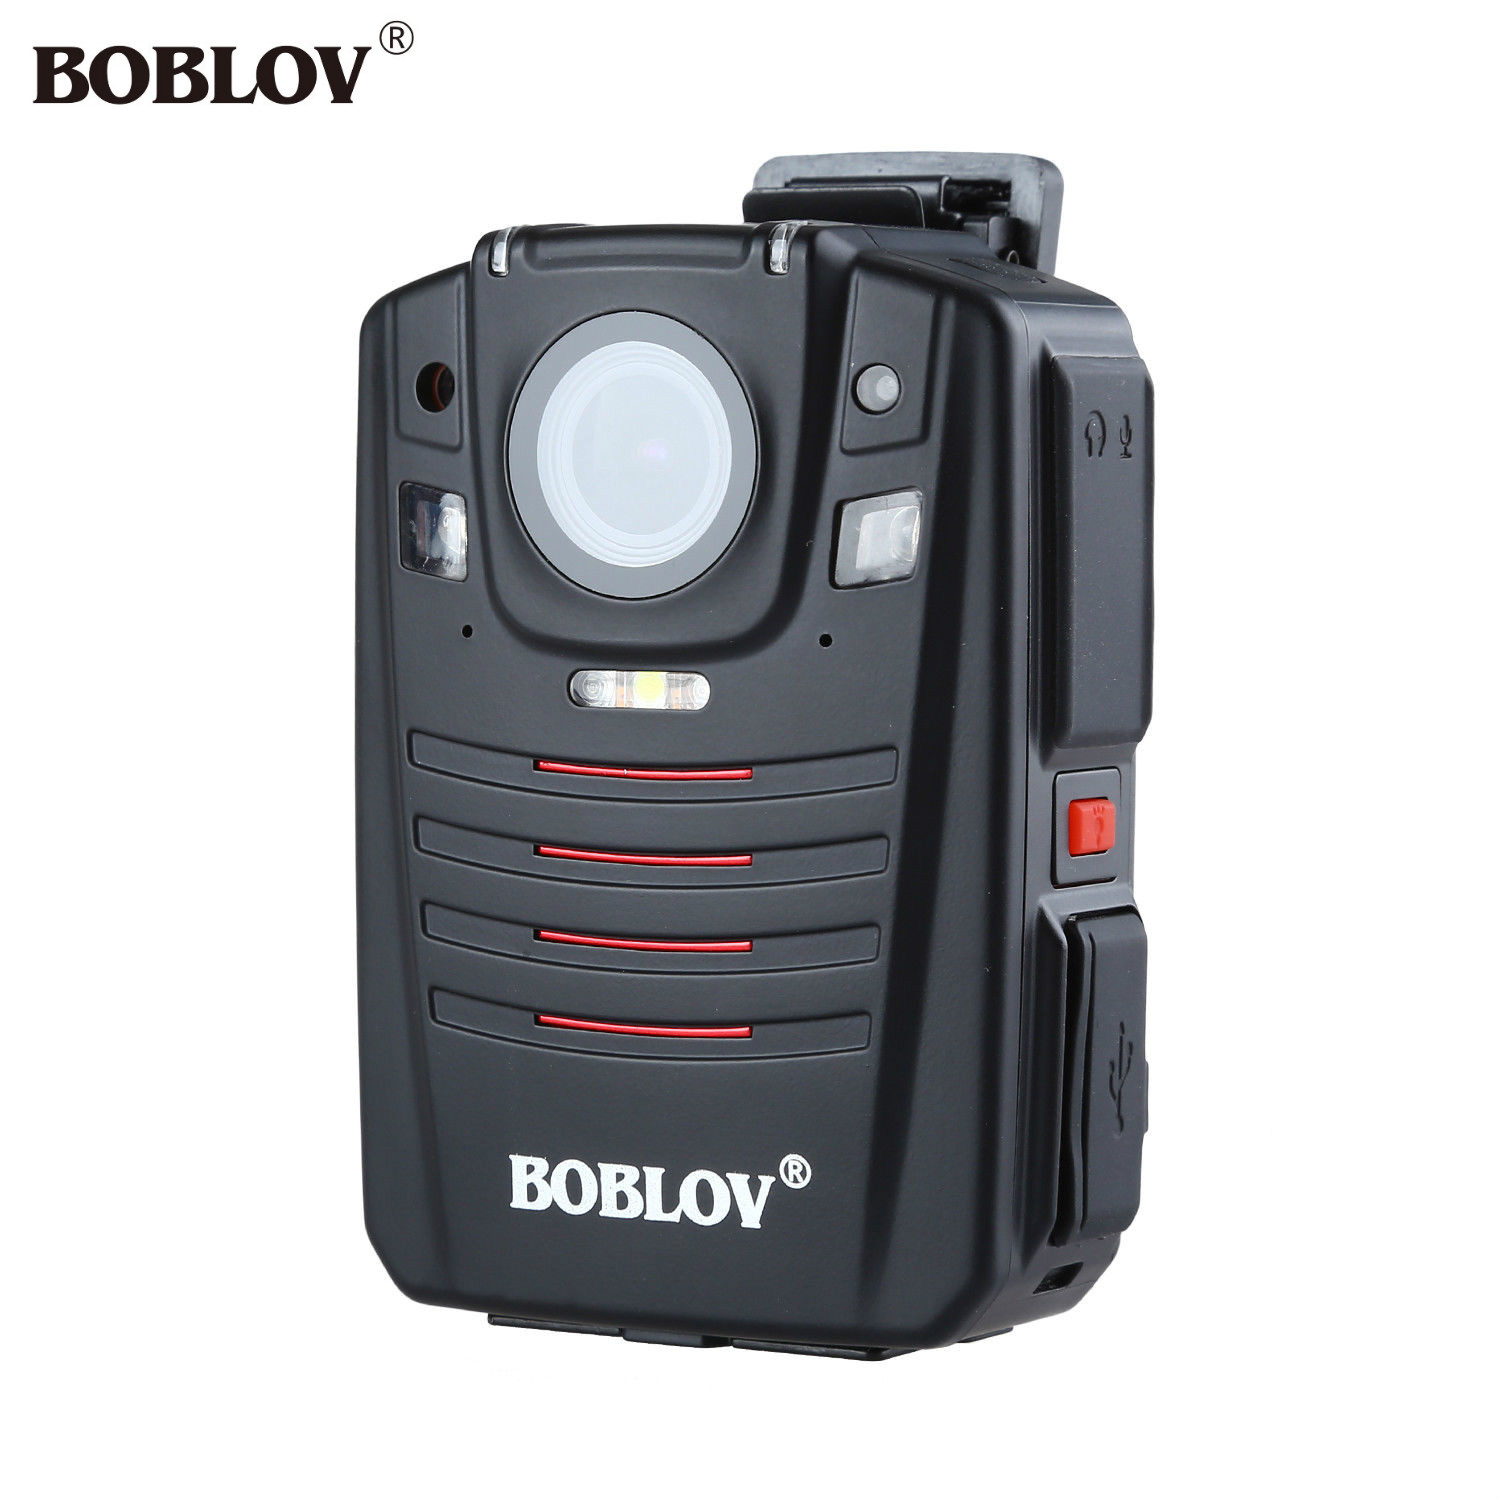 BOBLOV HD66-07 1296P 64GB Audio Video Recorder 2.0 LCD Night Vision Video Body Camera Ambarella A7 Police Cam GPS Remote Control